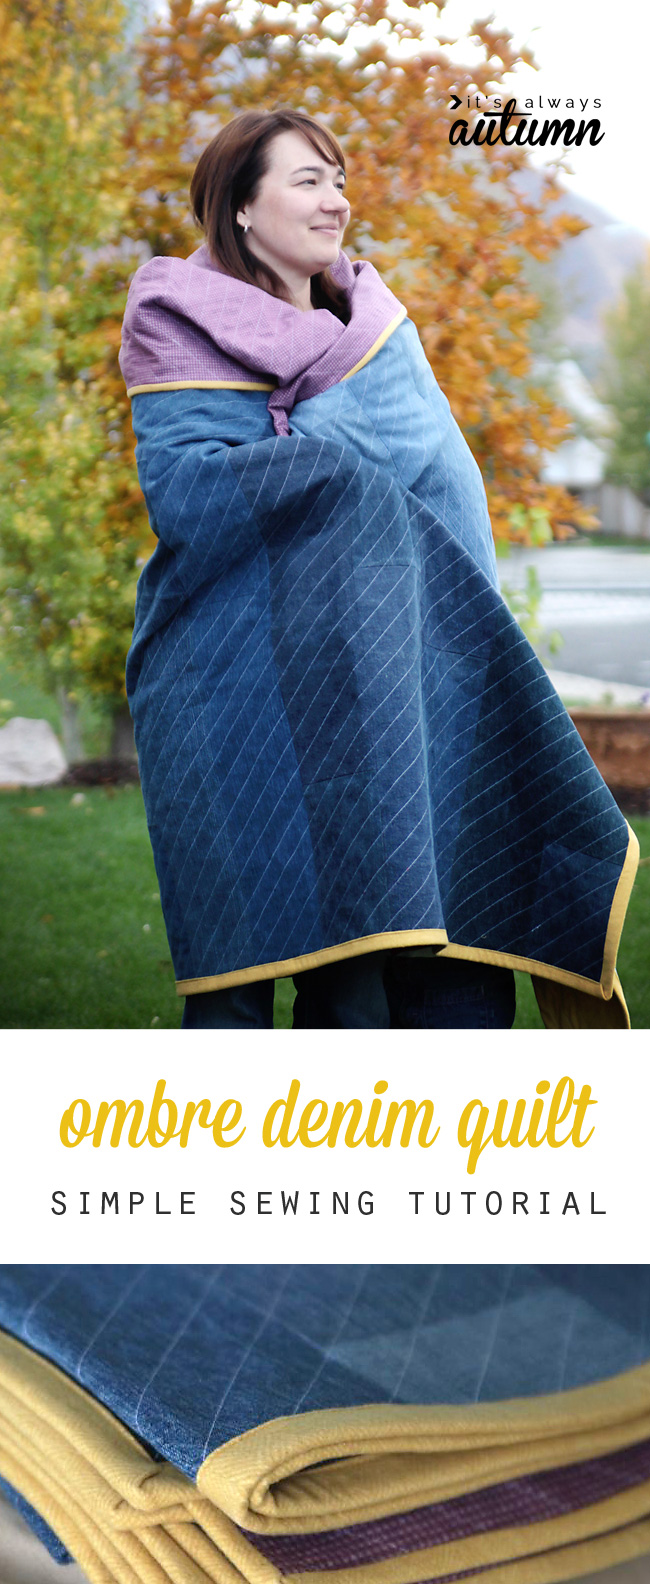 A person wrapped up in a denim quilt